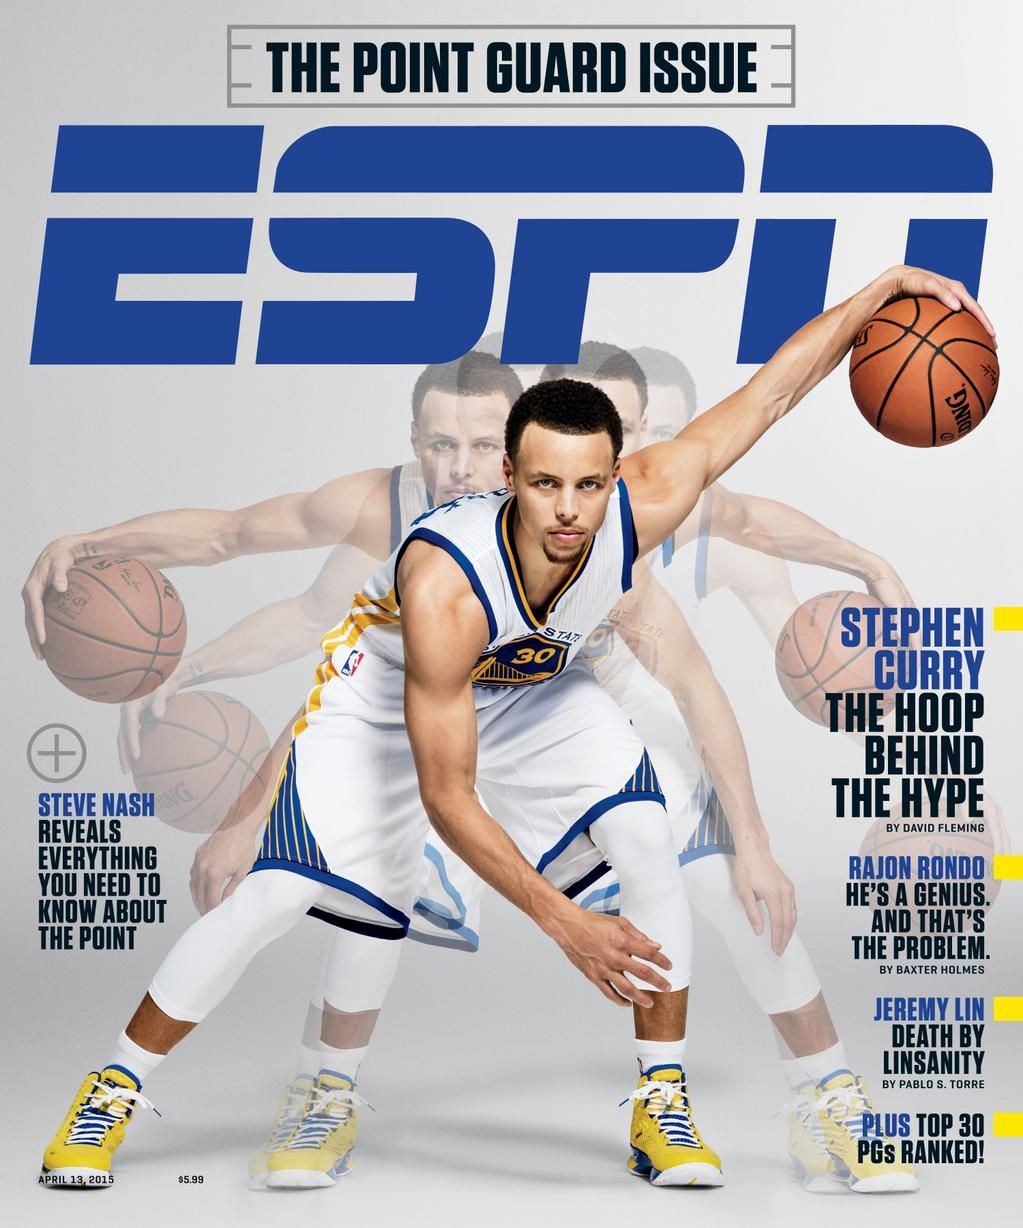 1b736c4c7df3 Steph Curry. Love this guy. He knows how to handle the ball and  shoot...Damn.